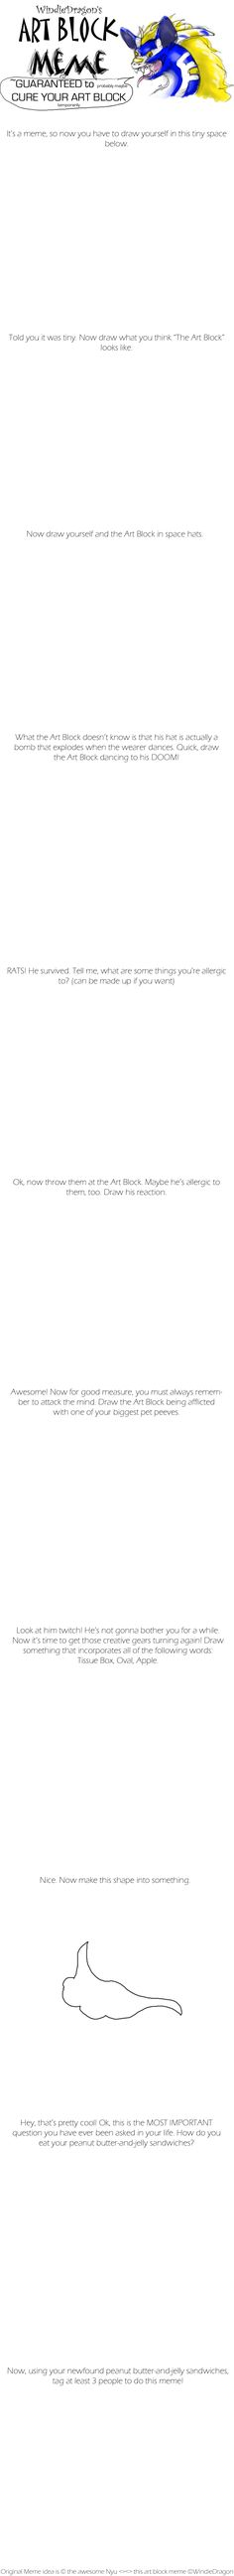 Art Block Meme Blank by WindieDragon.deviantart.com on @DeviantArt